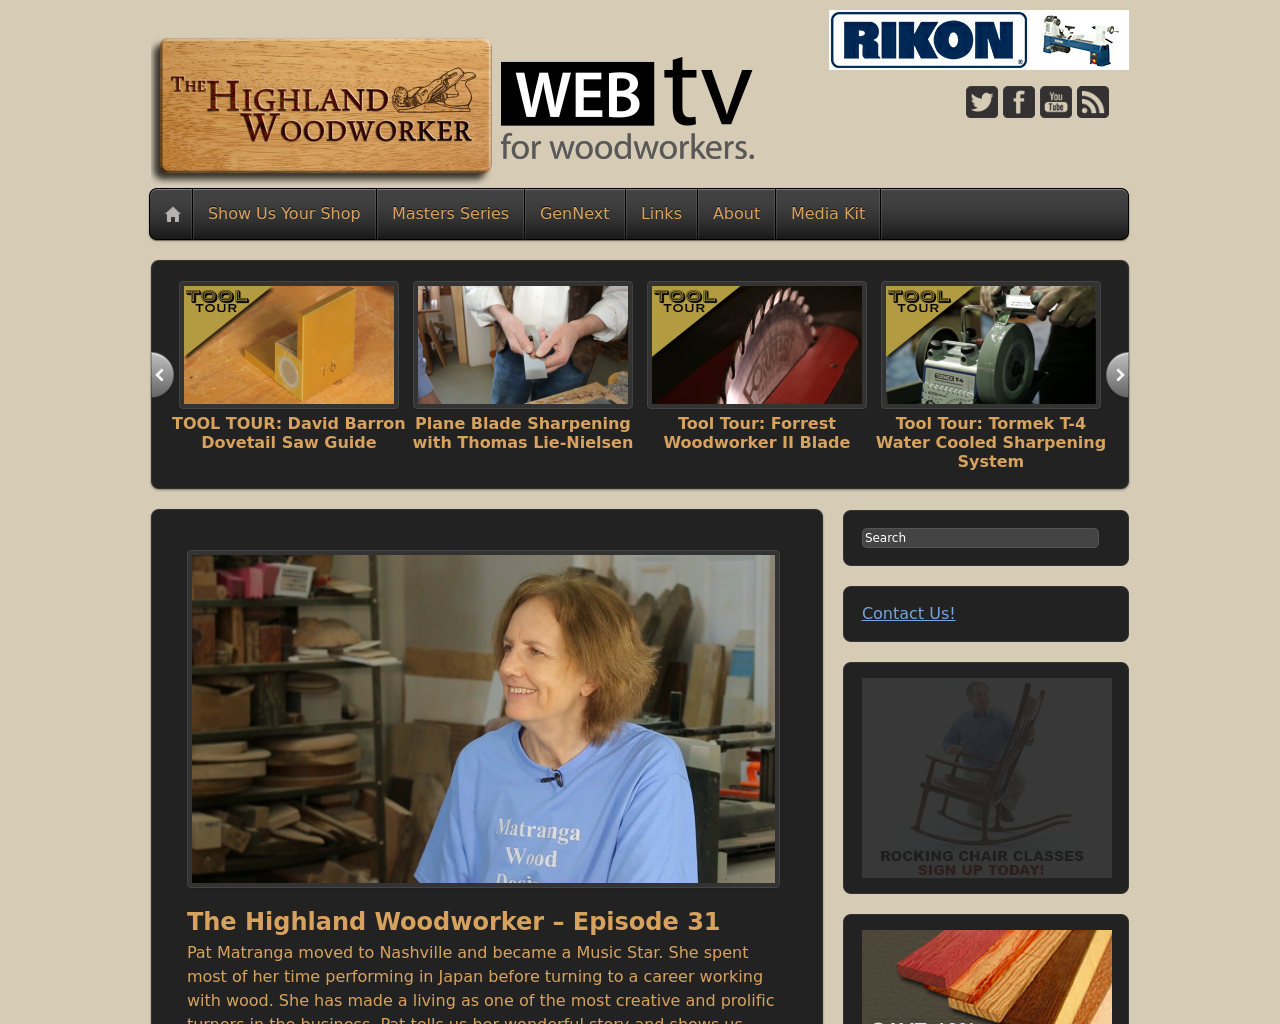 The-Highland-Woodworker-Advertising-Reviews-Pricing